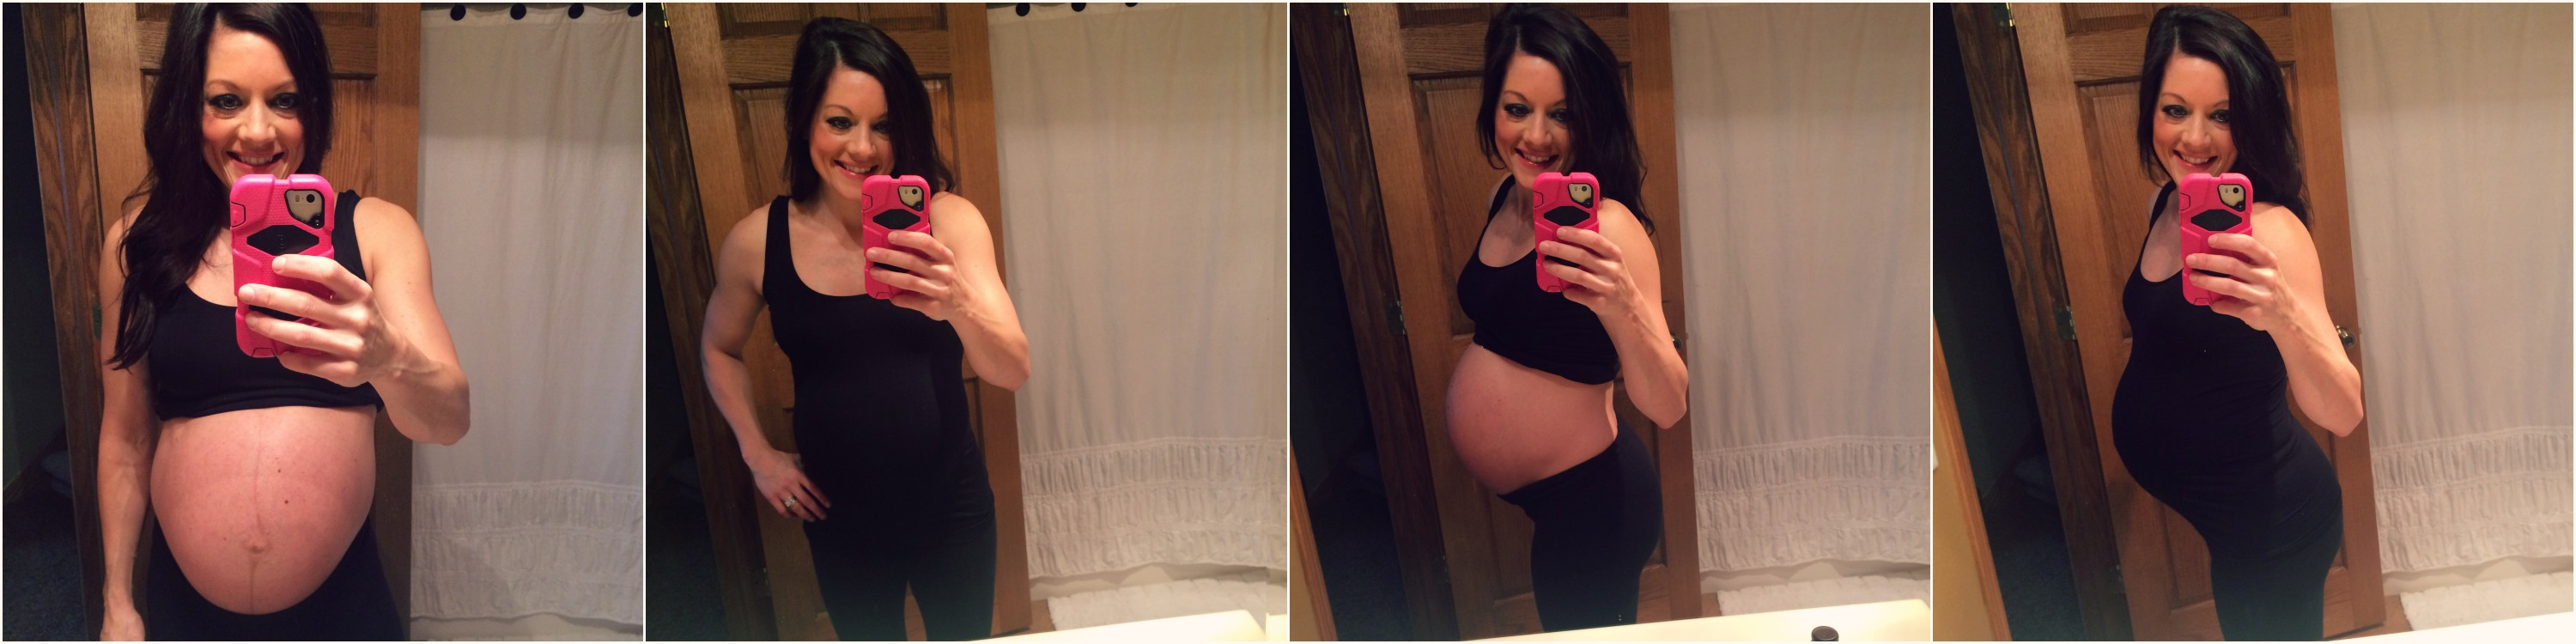 39 Weeks Pregnant - Dayna Deters Determined Fitness